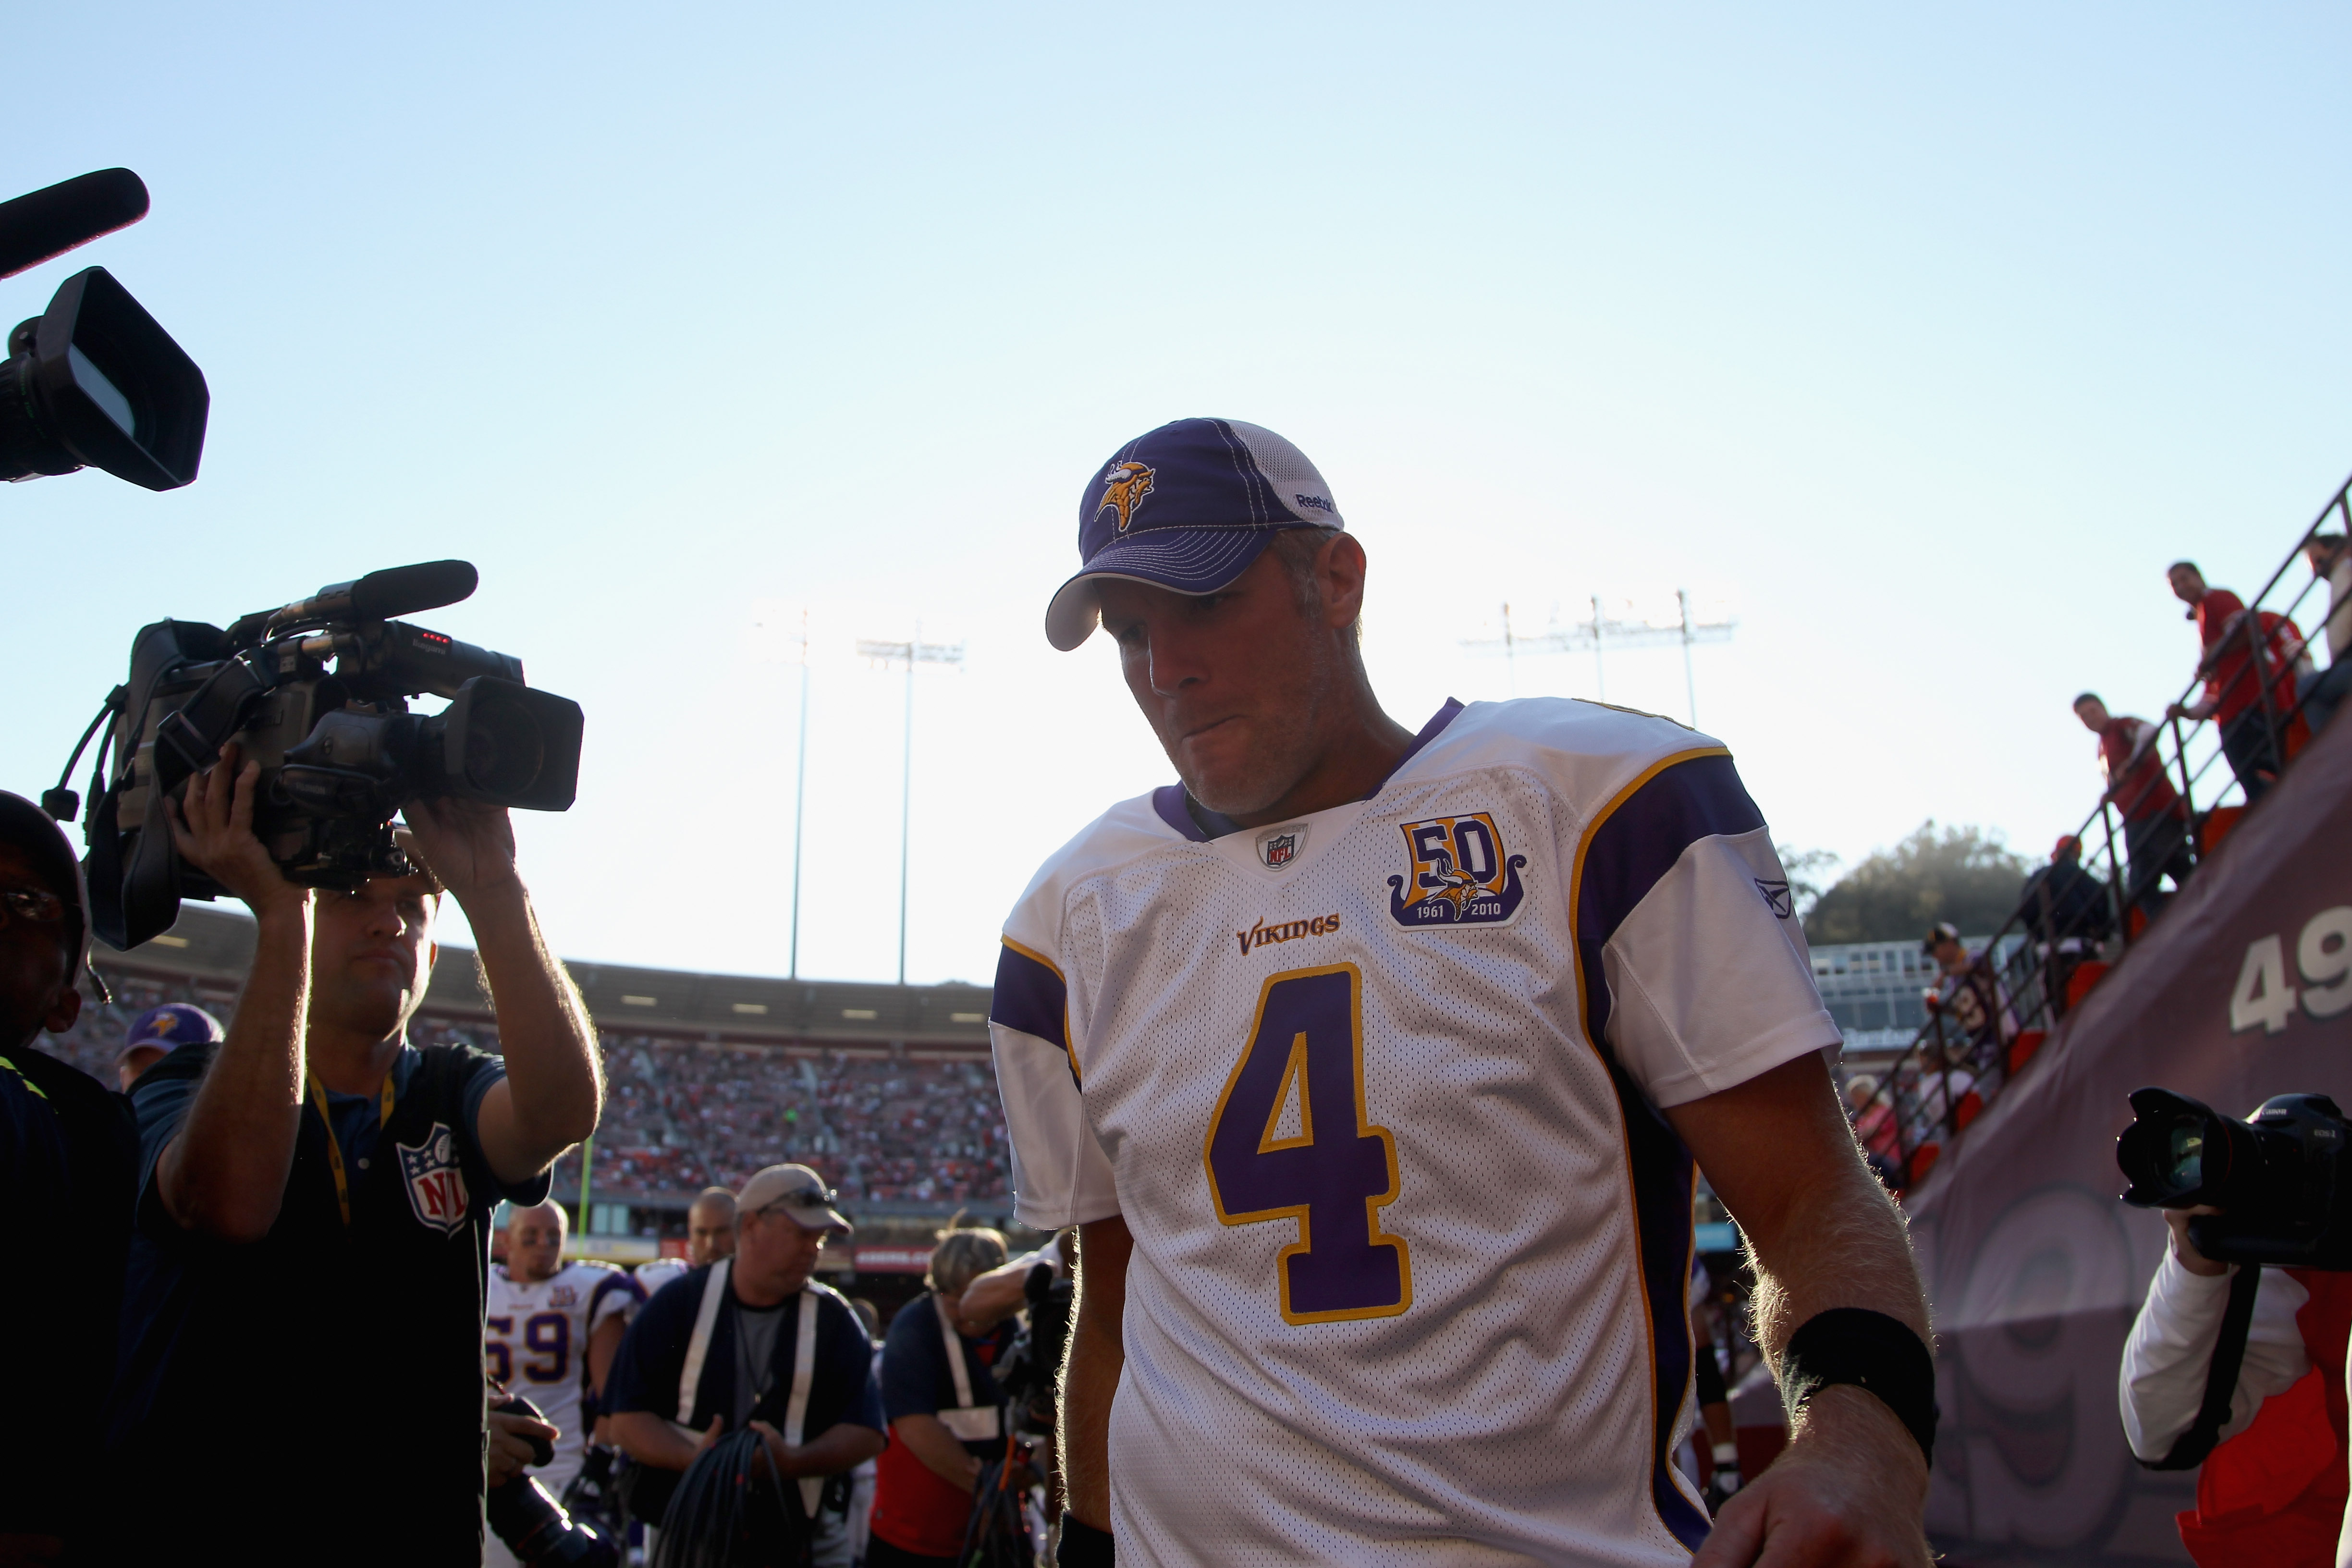 SAN FRANCISCO - AUGUST 22:  Brett Favre #4 of the Minnesota Vikings leaves the field at halftime during their preseason game against the San Francisco 49ers at Candlestick Park on August 22, 2010 in San Francisco, California.  (Photo by Ezra Shaw/Getty Im